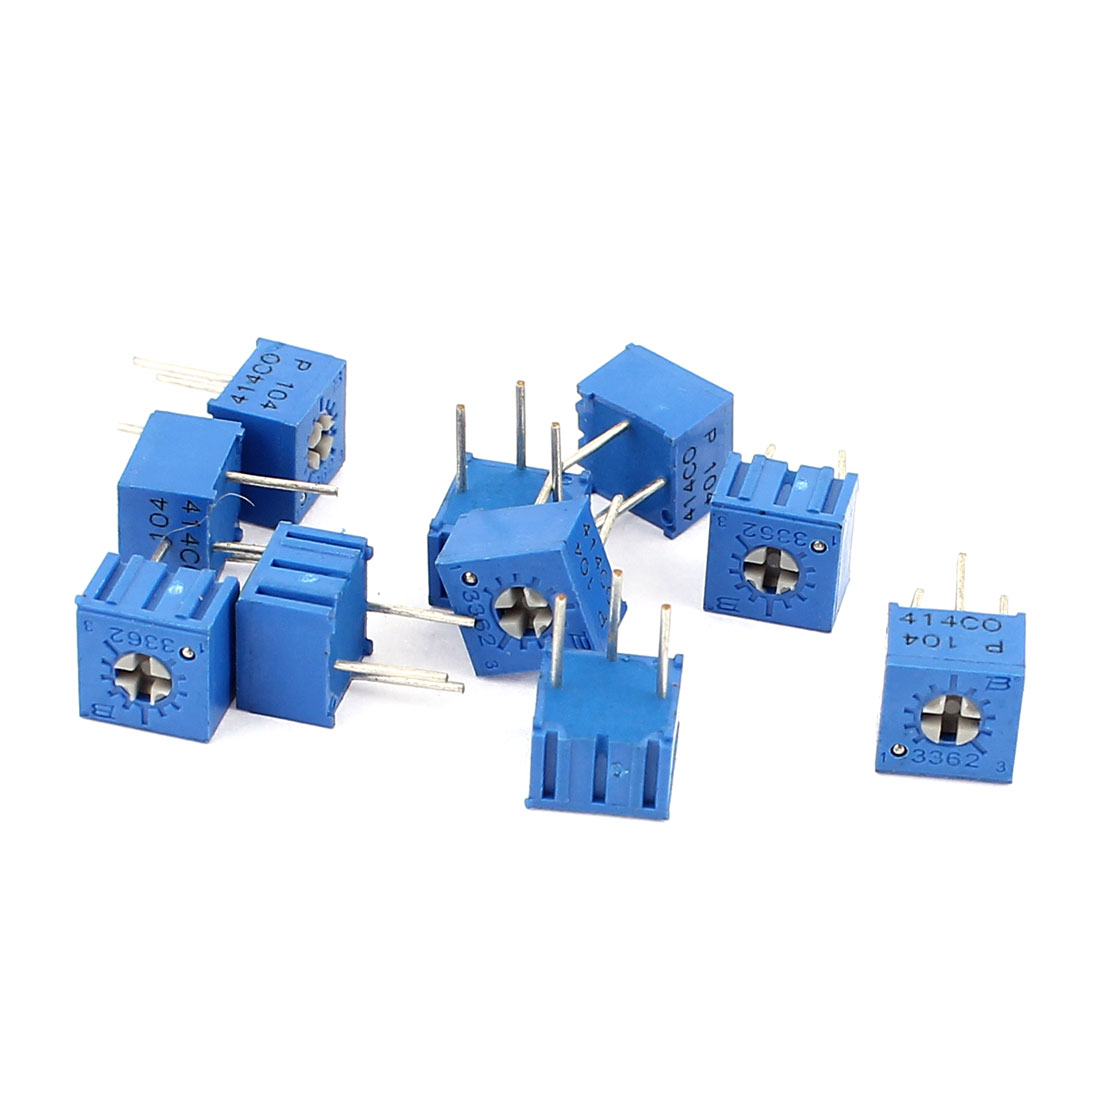 10Pcs Adjustable Potentiometer Trimmer Variable Resistor 3362P-104